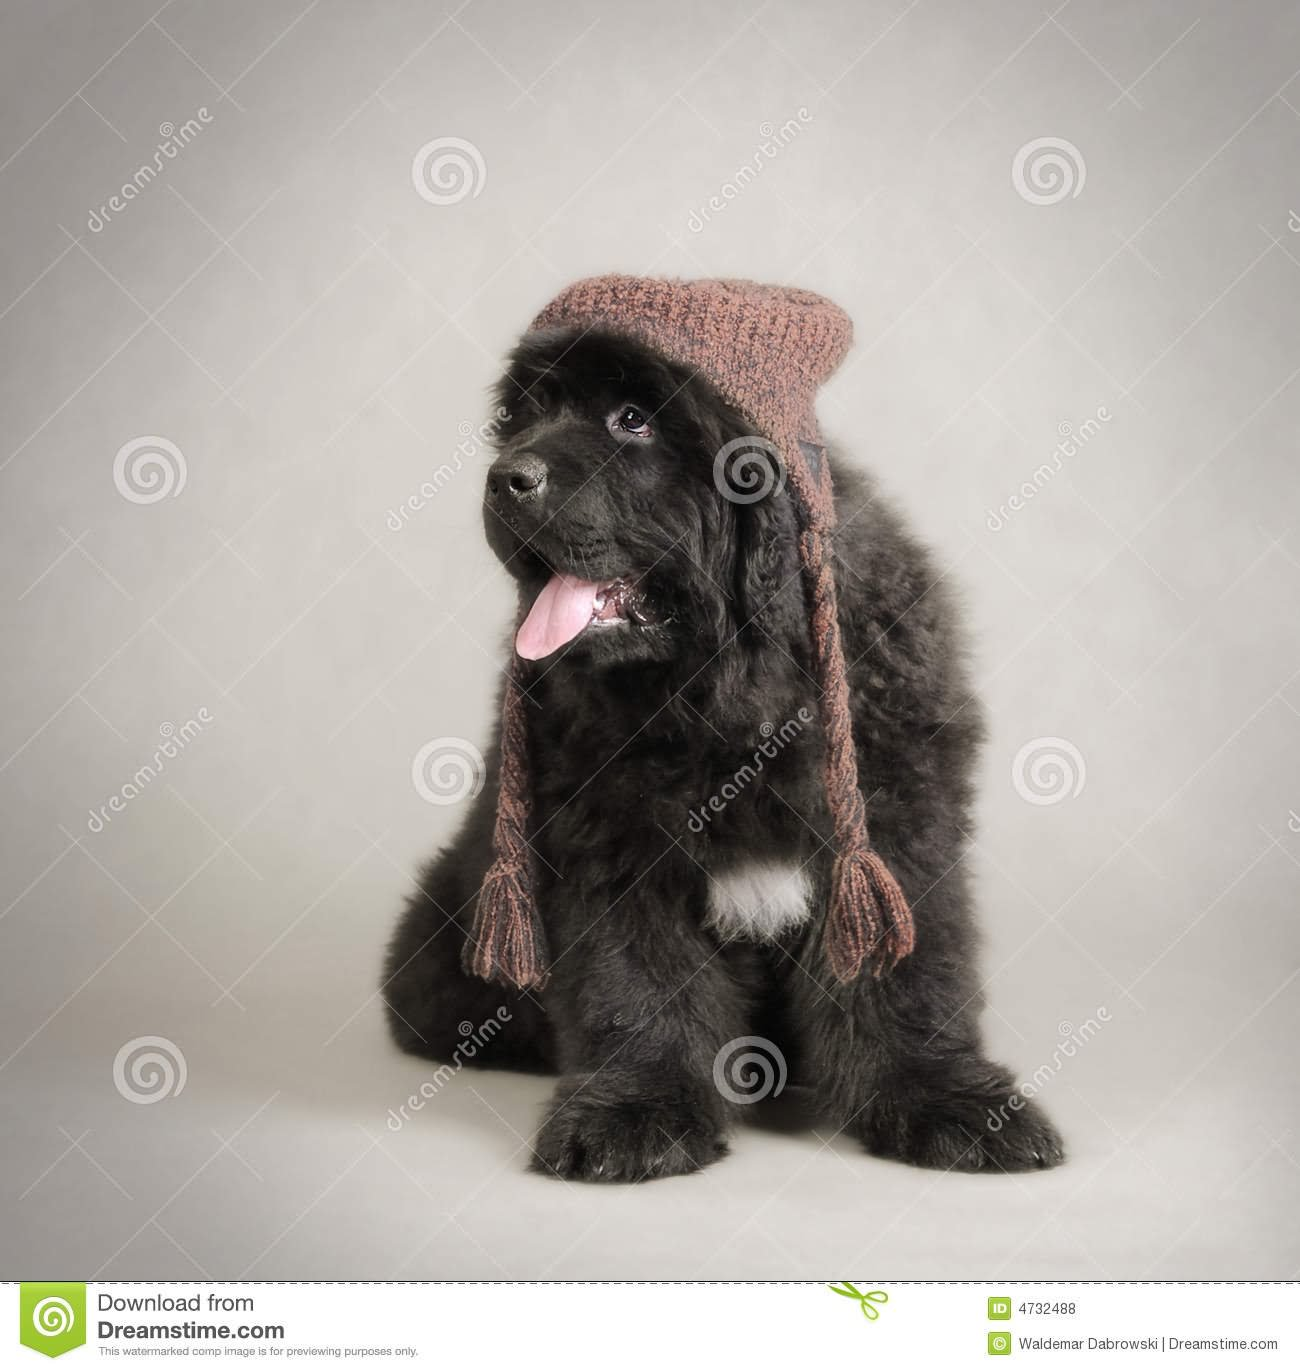 35 Most Beautiful Newfoundland Puppy Pictures And Photos